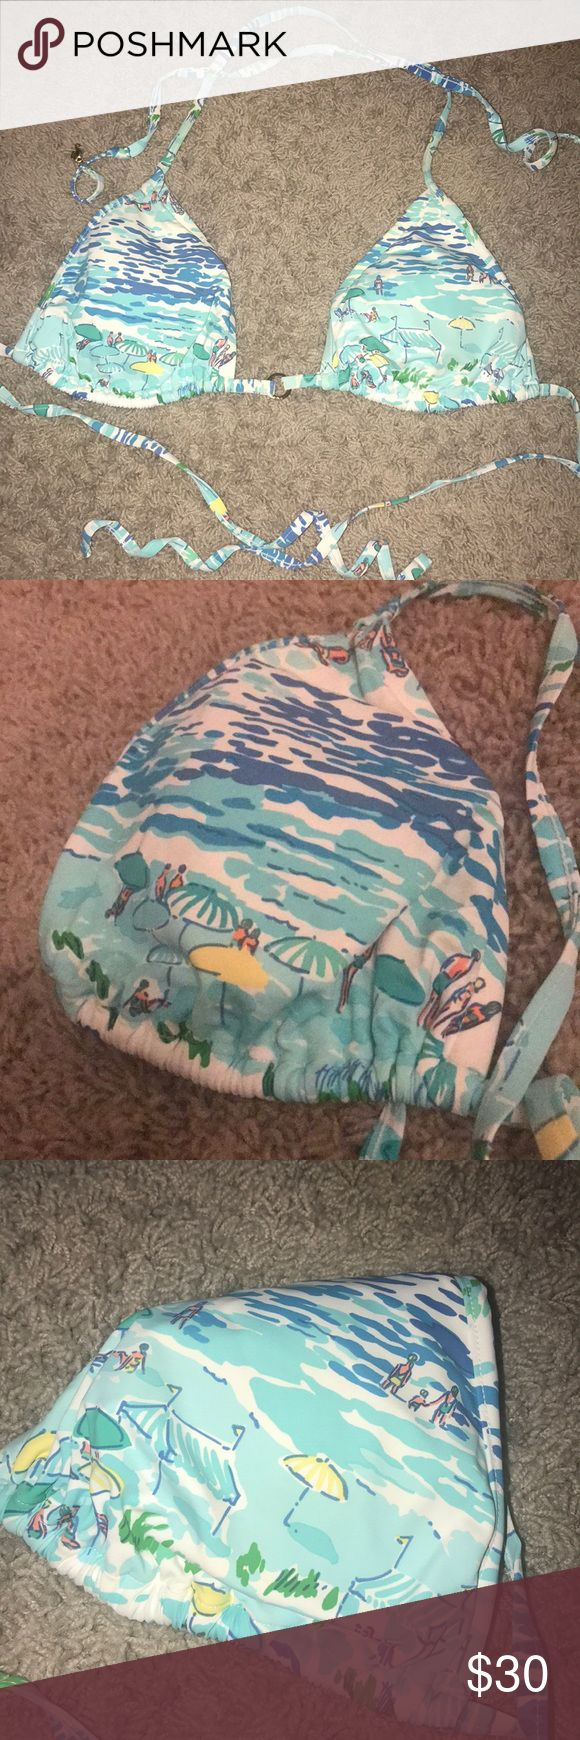 Lilly Pulitzer Triangle Bikini Top Has a beach scene on it i don't know the name for the pattern Has two little charms at the ends of the ties and a gold ring in the center of the two cups Size large I wear a 32DD and this fits me i just tie the straps extra tight to make it fit around me better and the large size is good for coverage!  Worn but in near perfect condition I have the bottoms too and can list Lilly Pulitzer Swim Bikinis